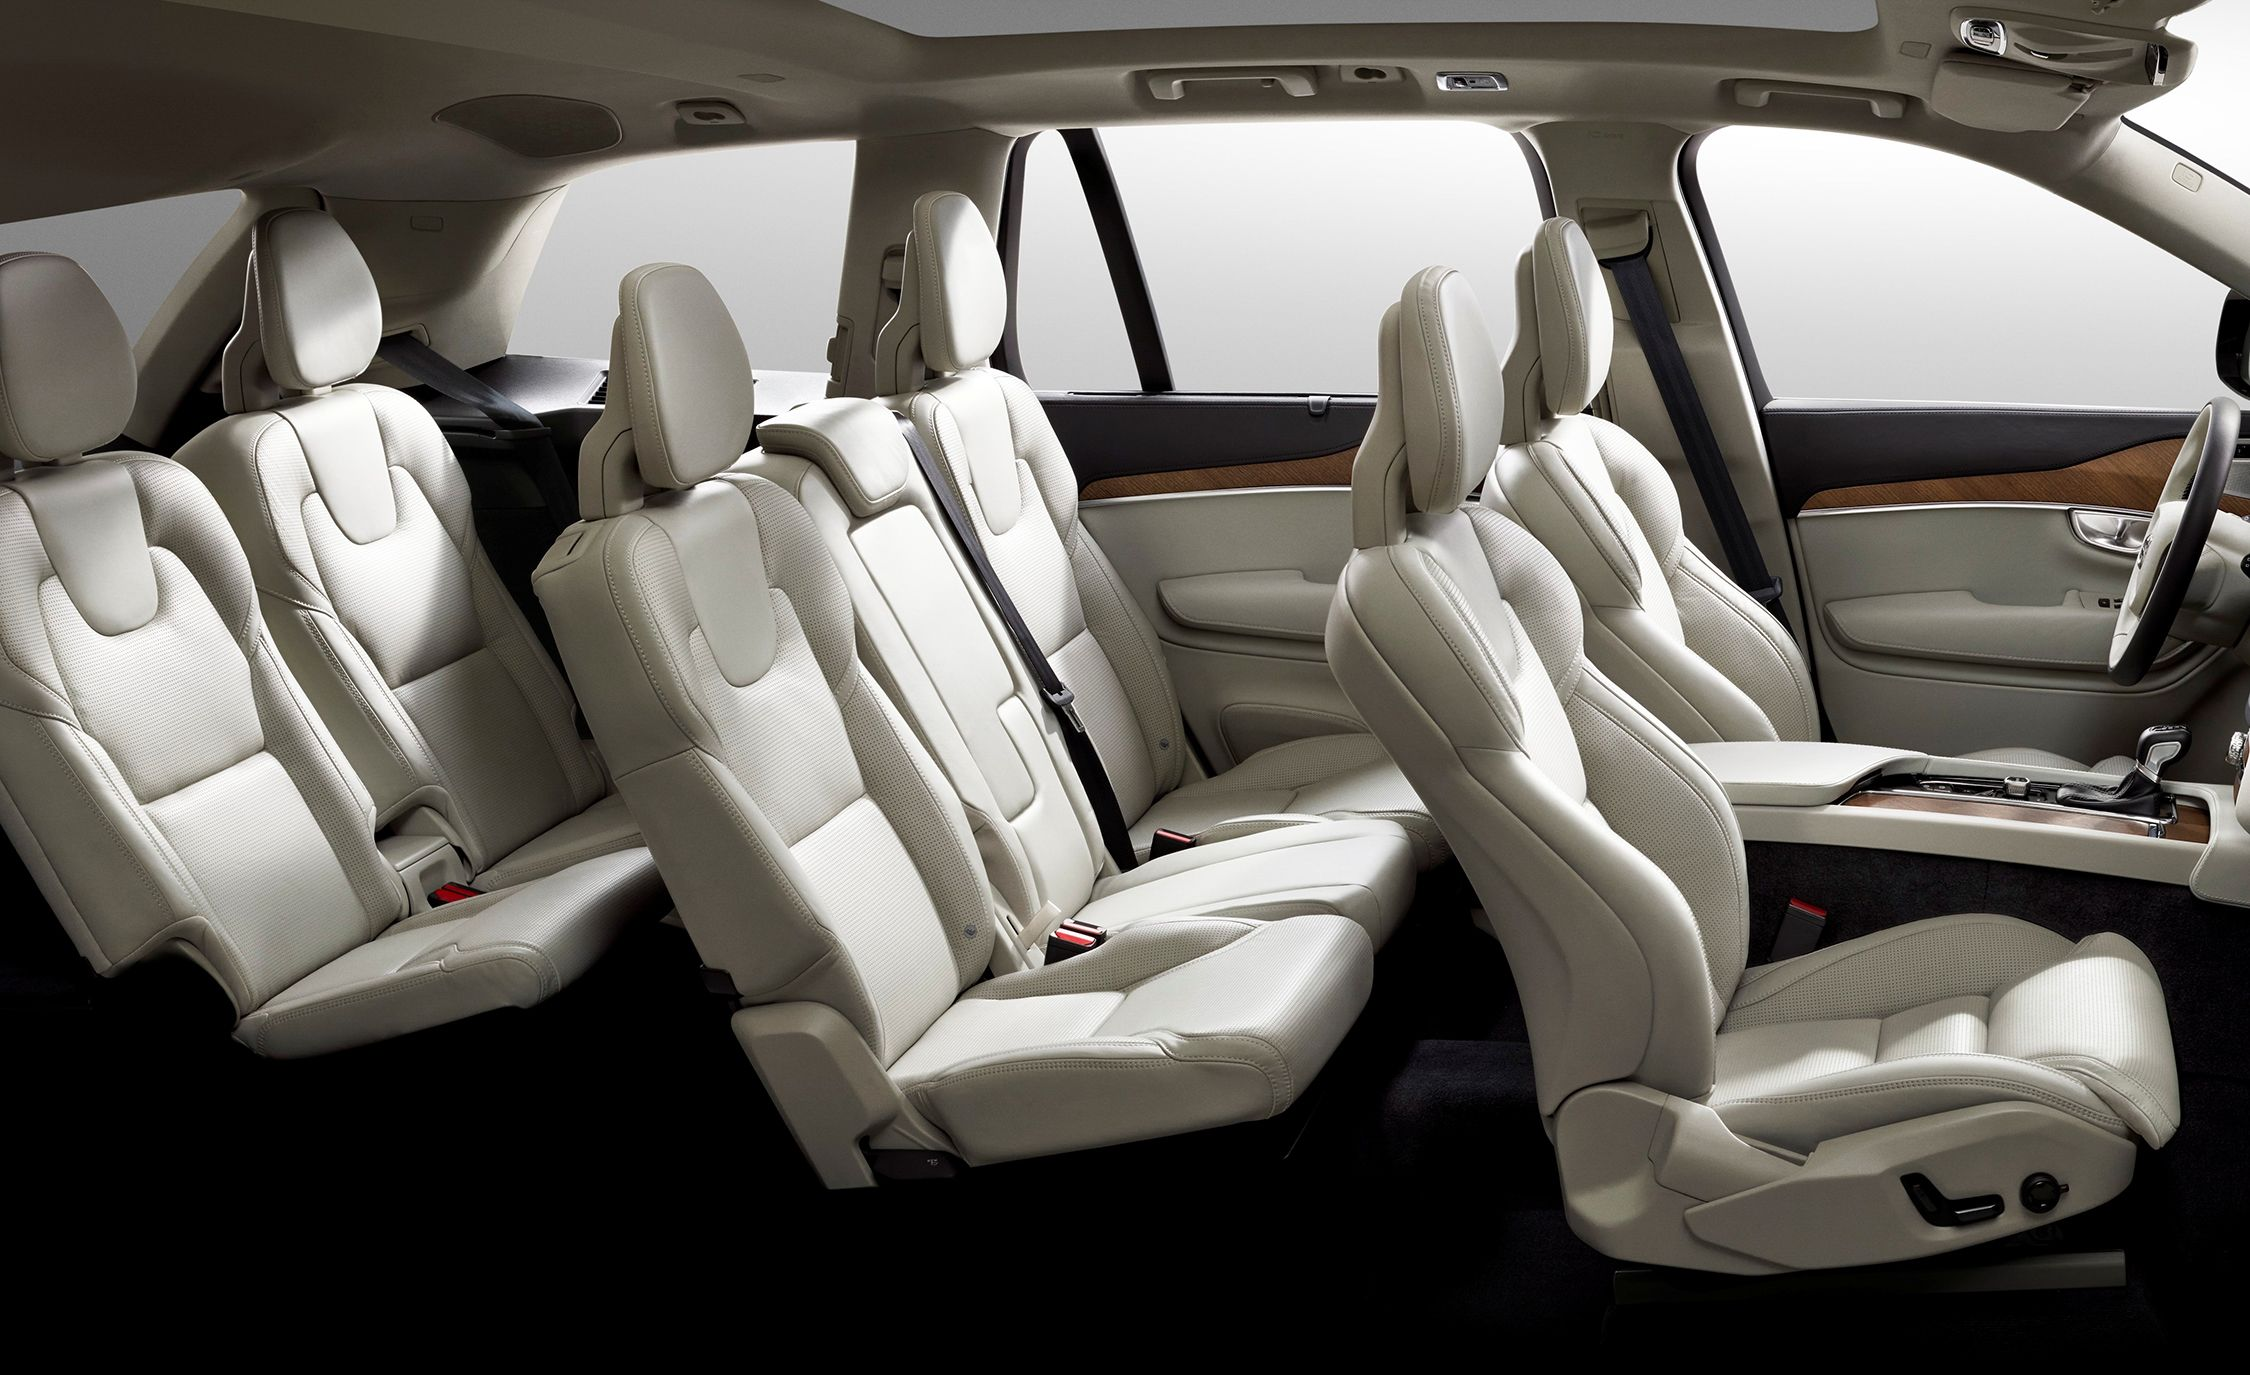 Volvo suv with 3rd row seating